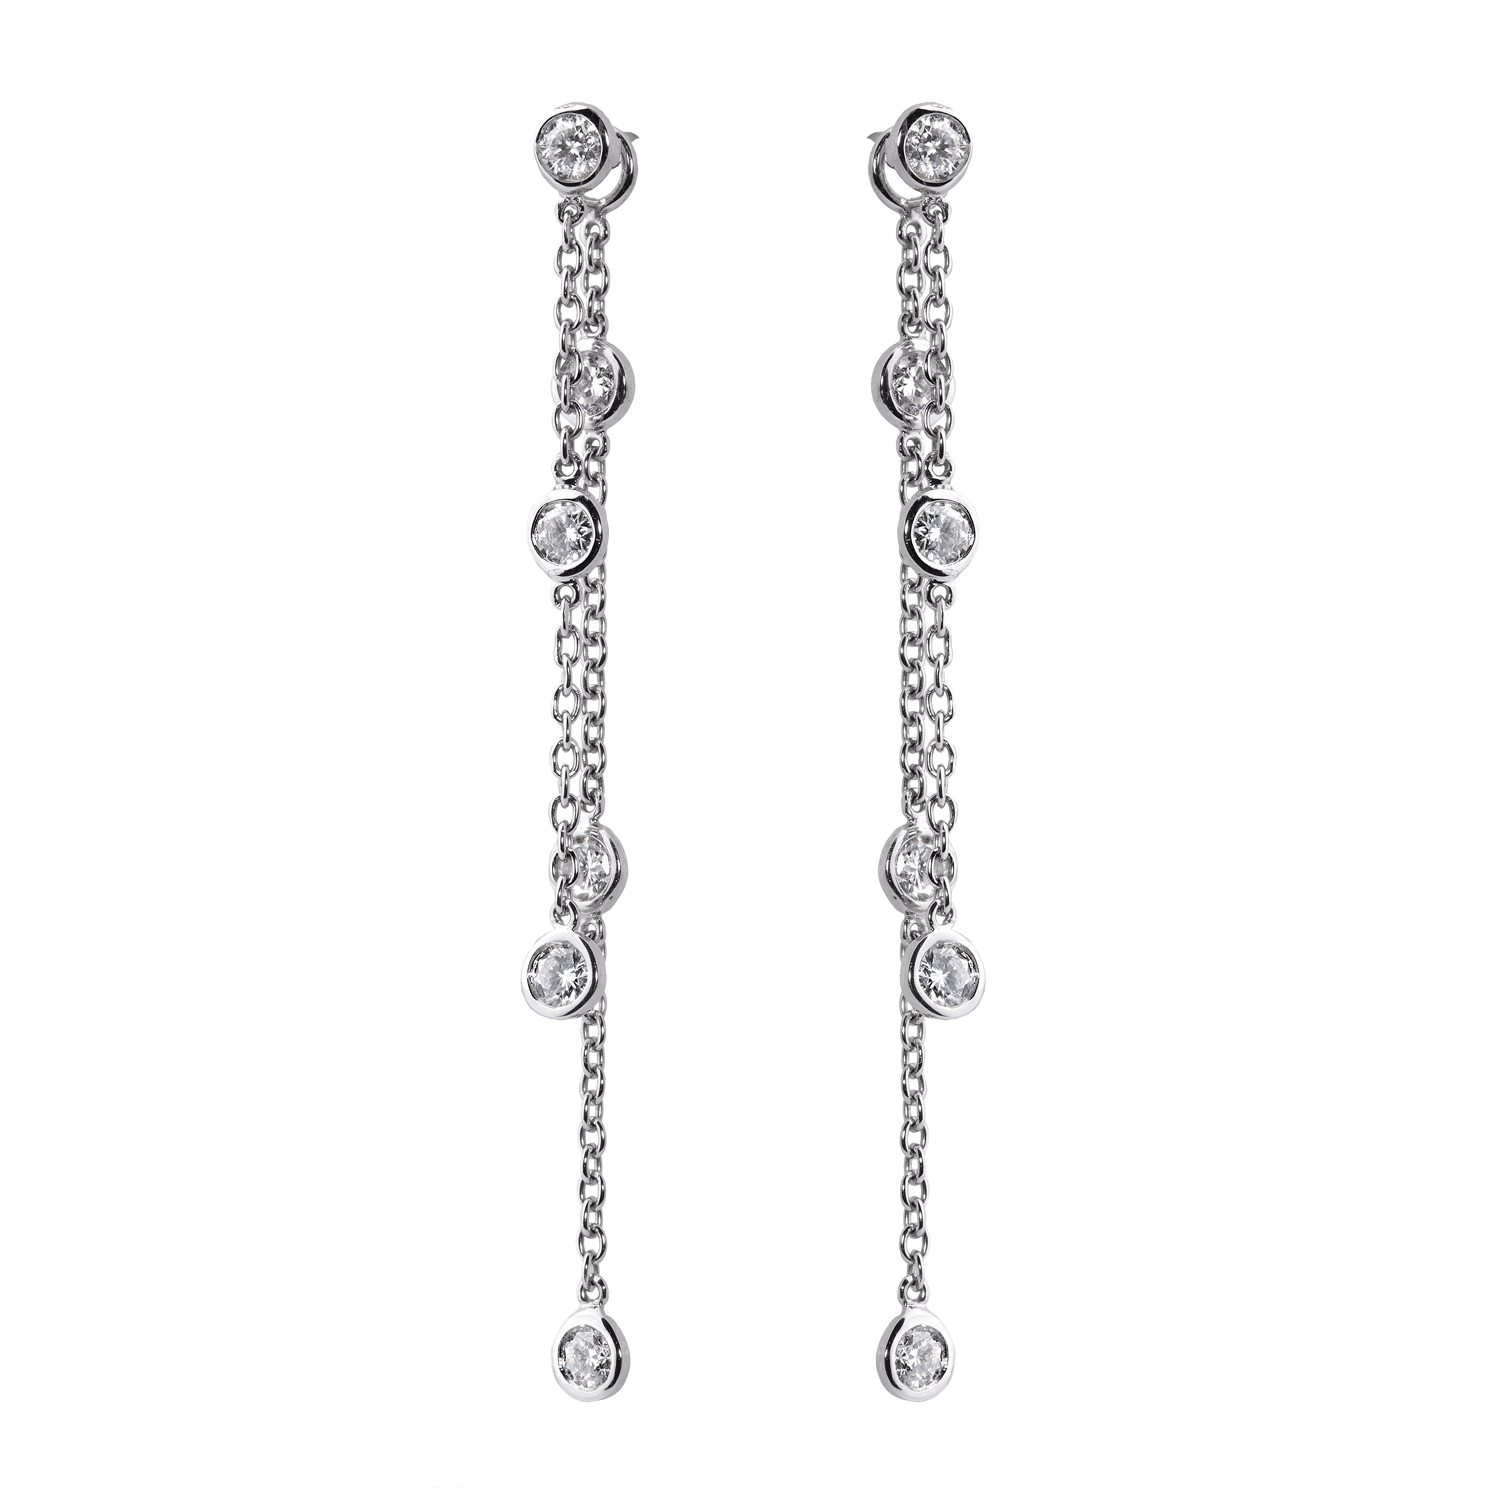 Boucles D'oreilles Constellation Or 18k Serties de diamants